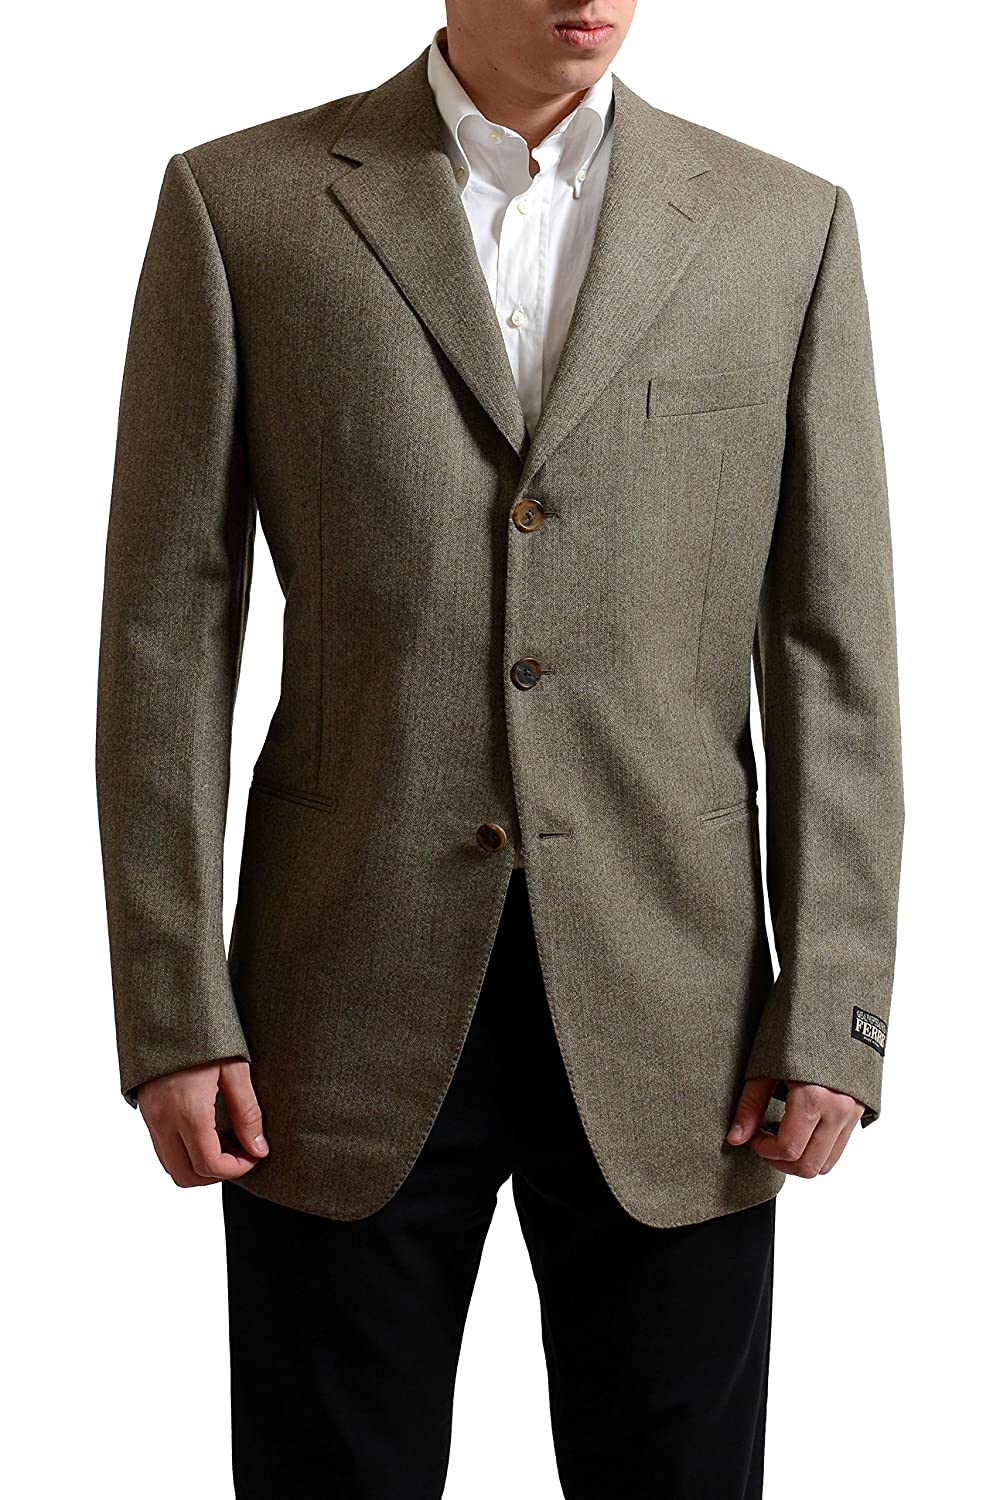 Gianfranco Ferre Mens 100/% Wool Blazer Sport Coat US 44 IT 54